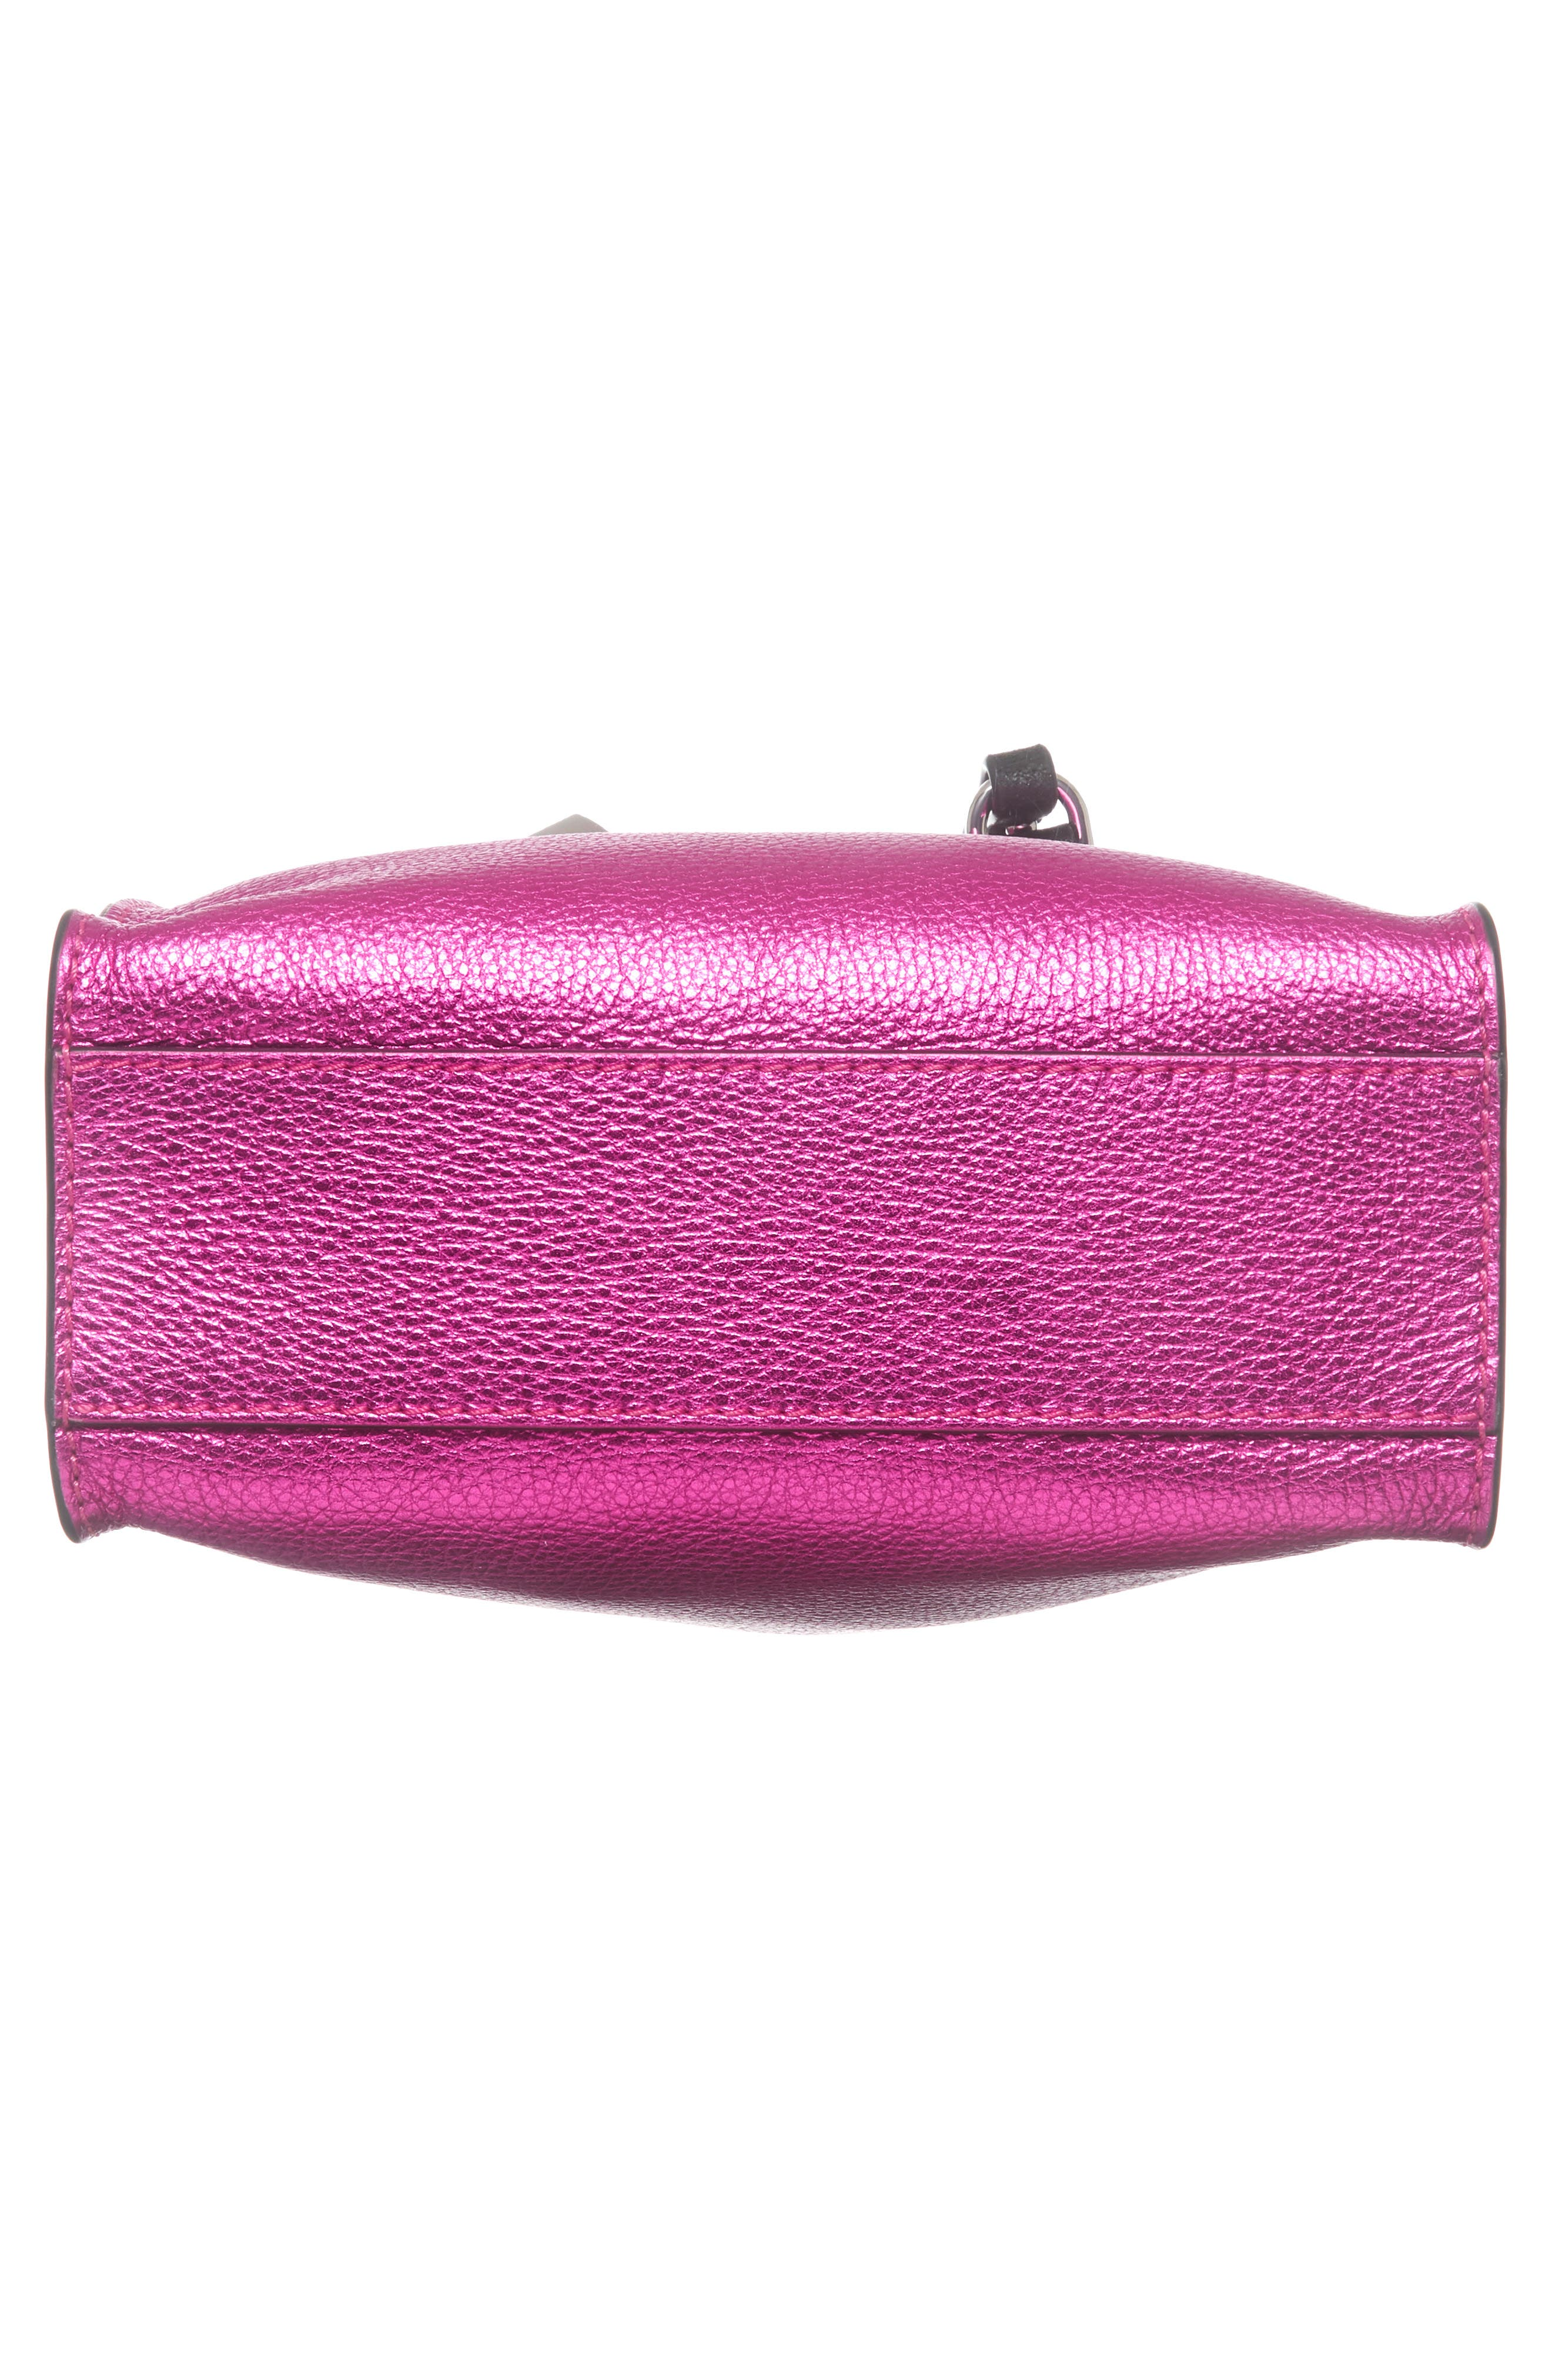 Mini The Grind Metallic Leather Tote,                             Alternate thumbnail 6, color,                             PUNCH PINK